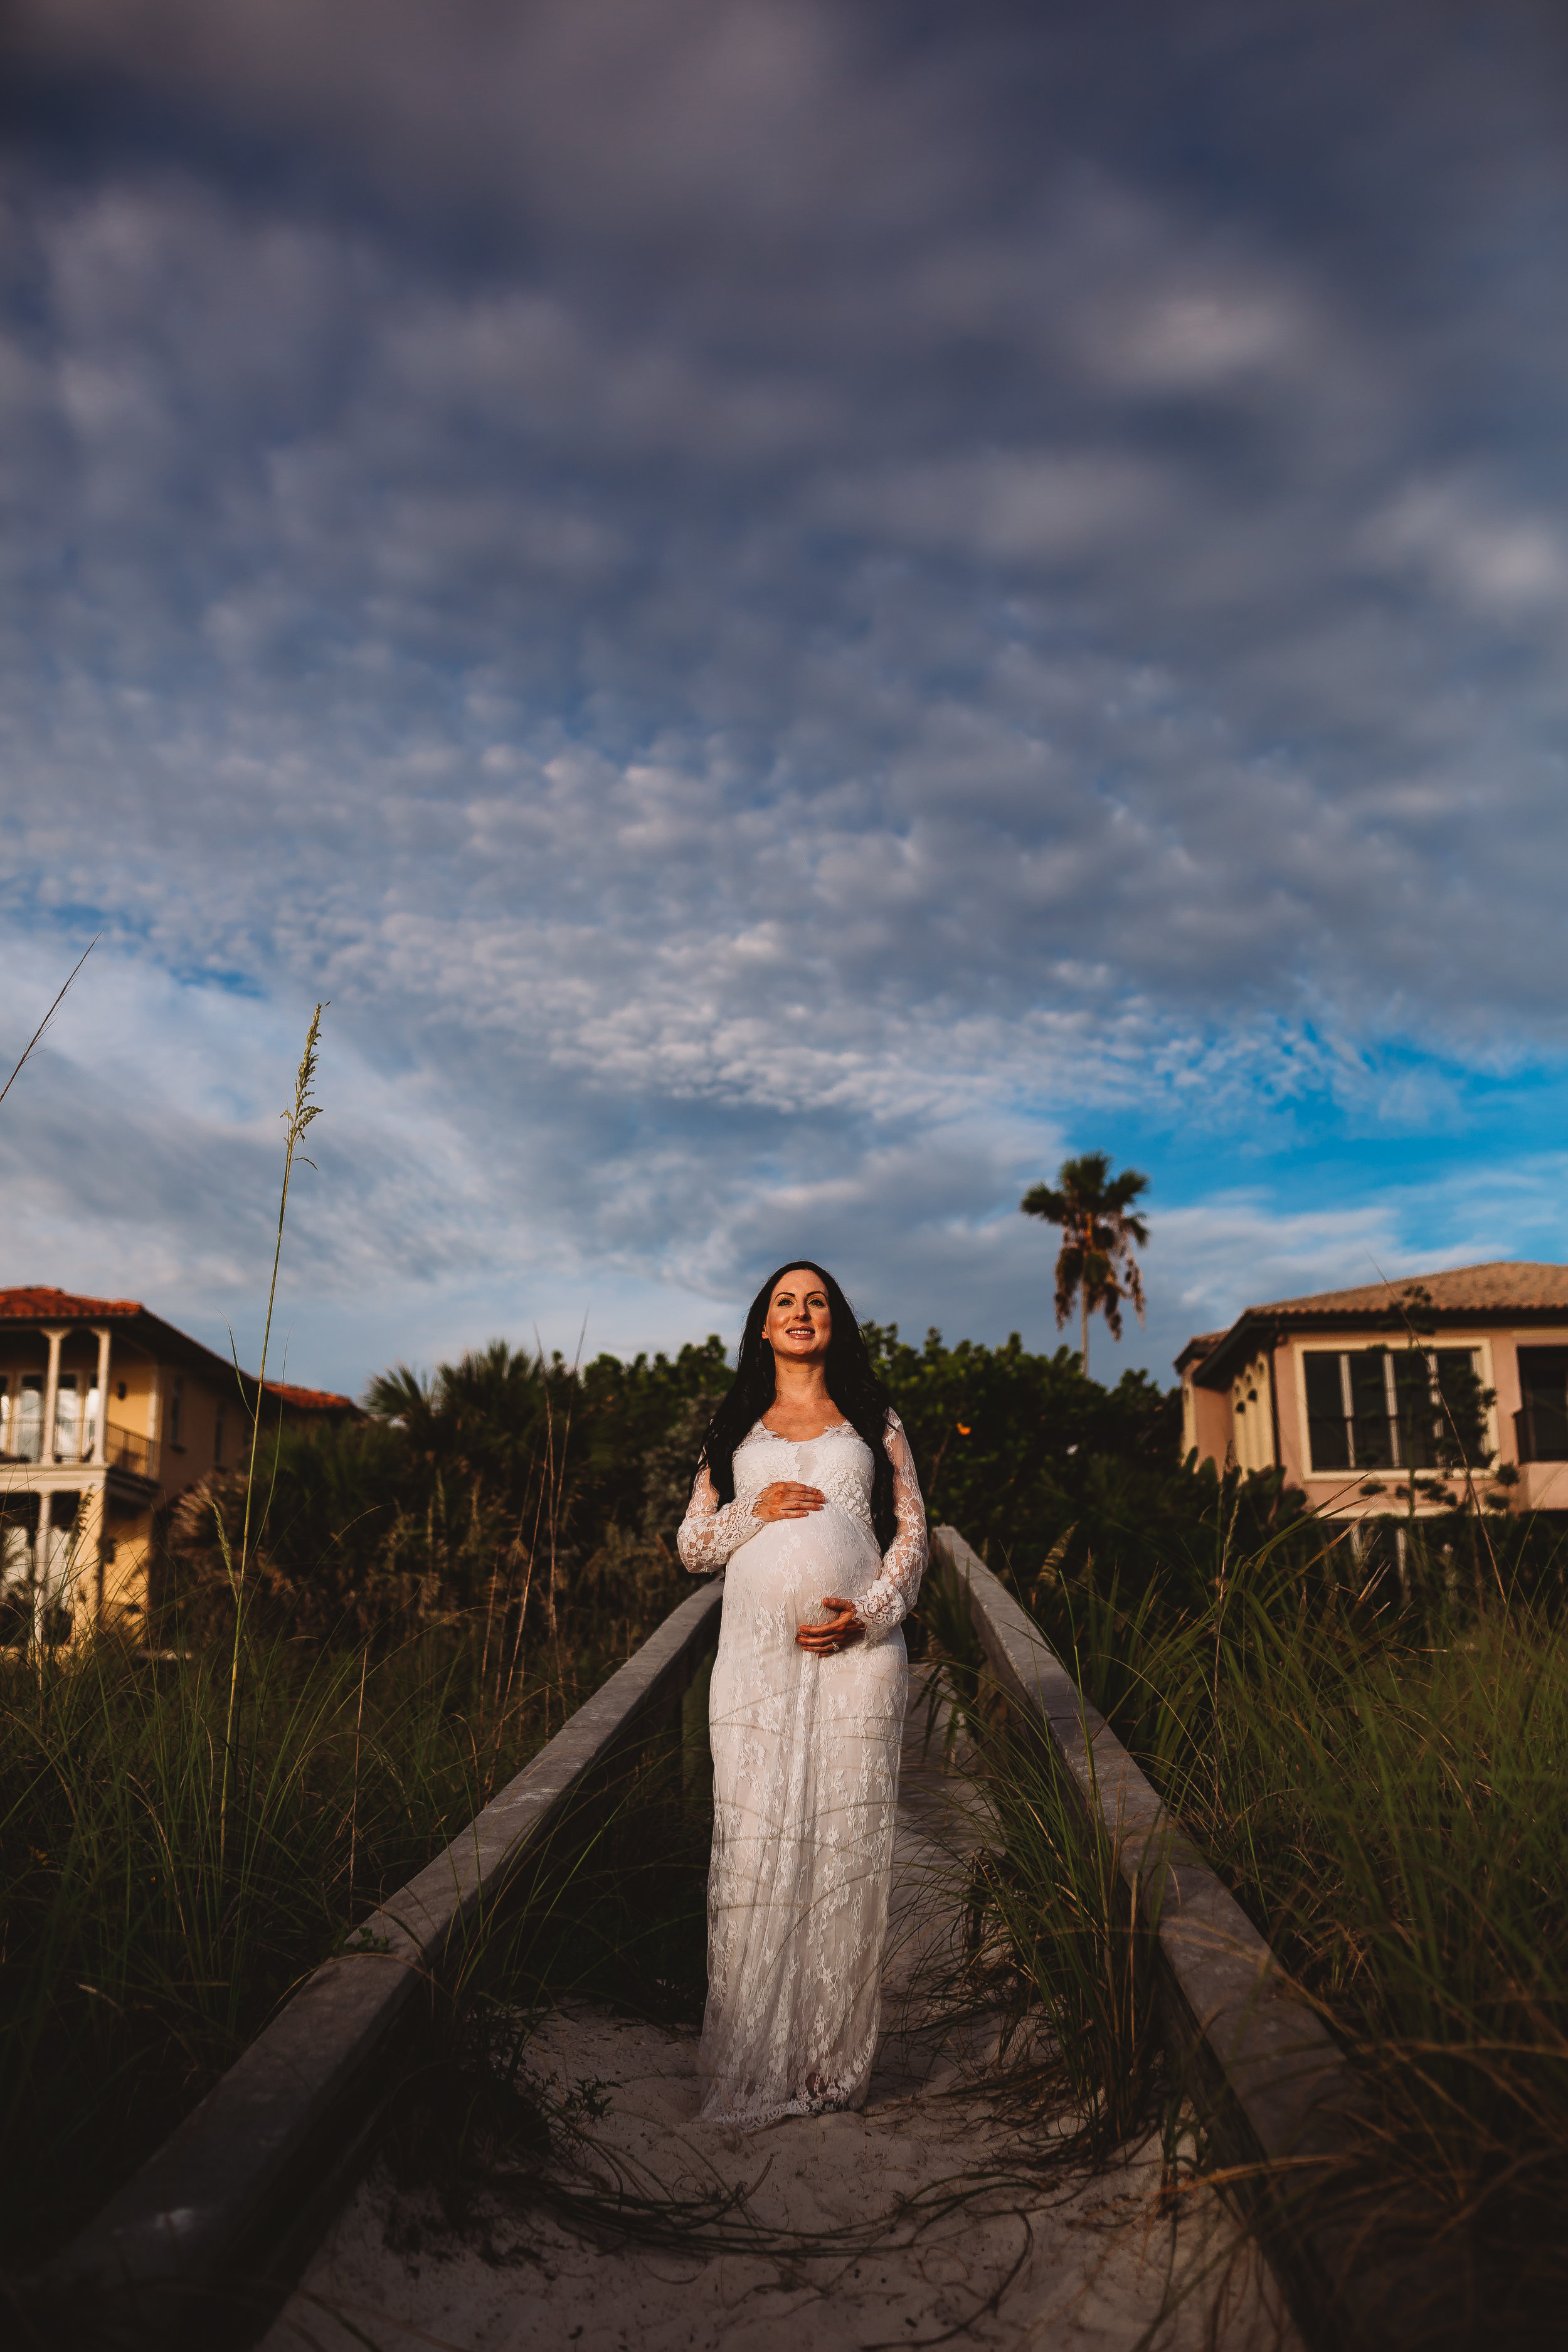 sunset maternity photo shoot on the beach, pinellas county